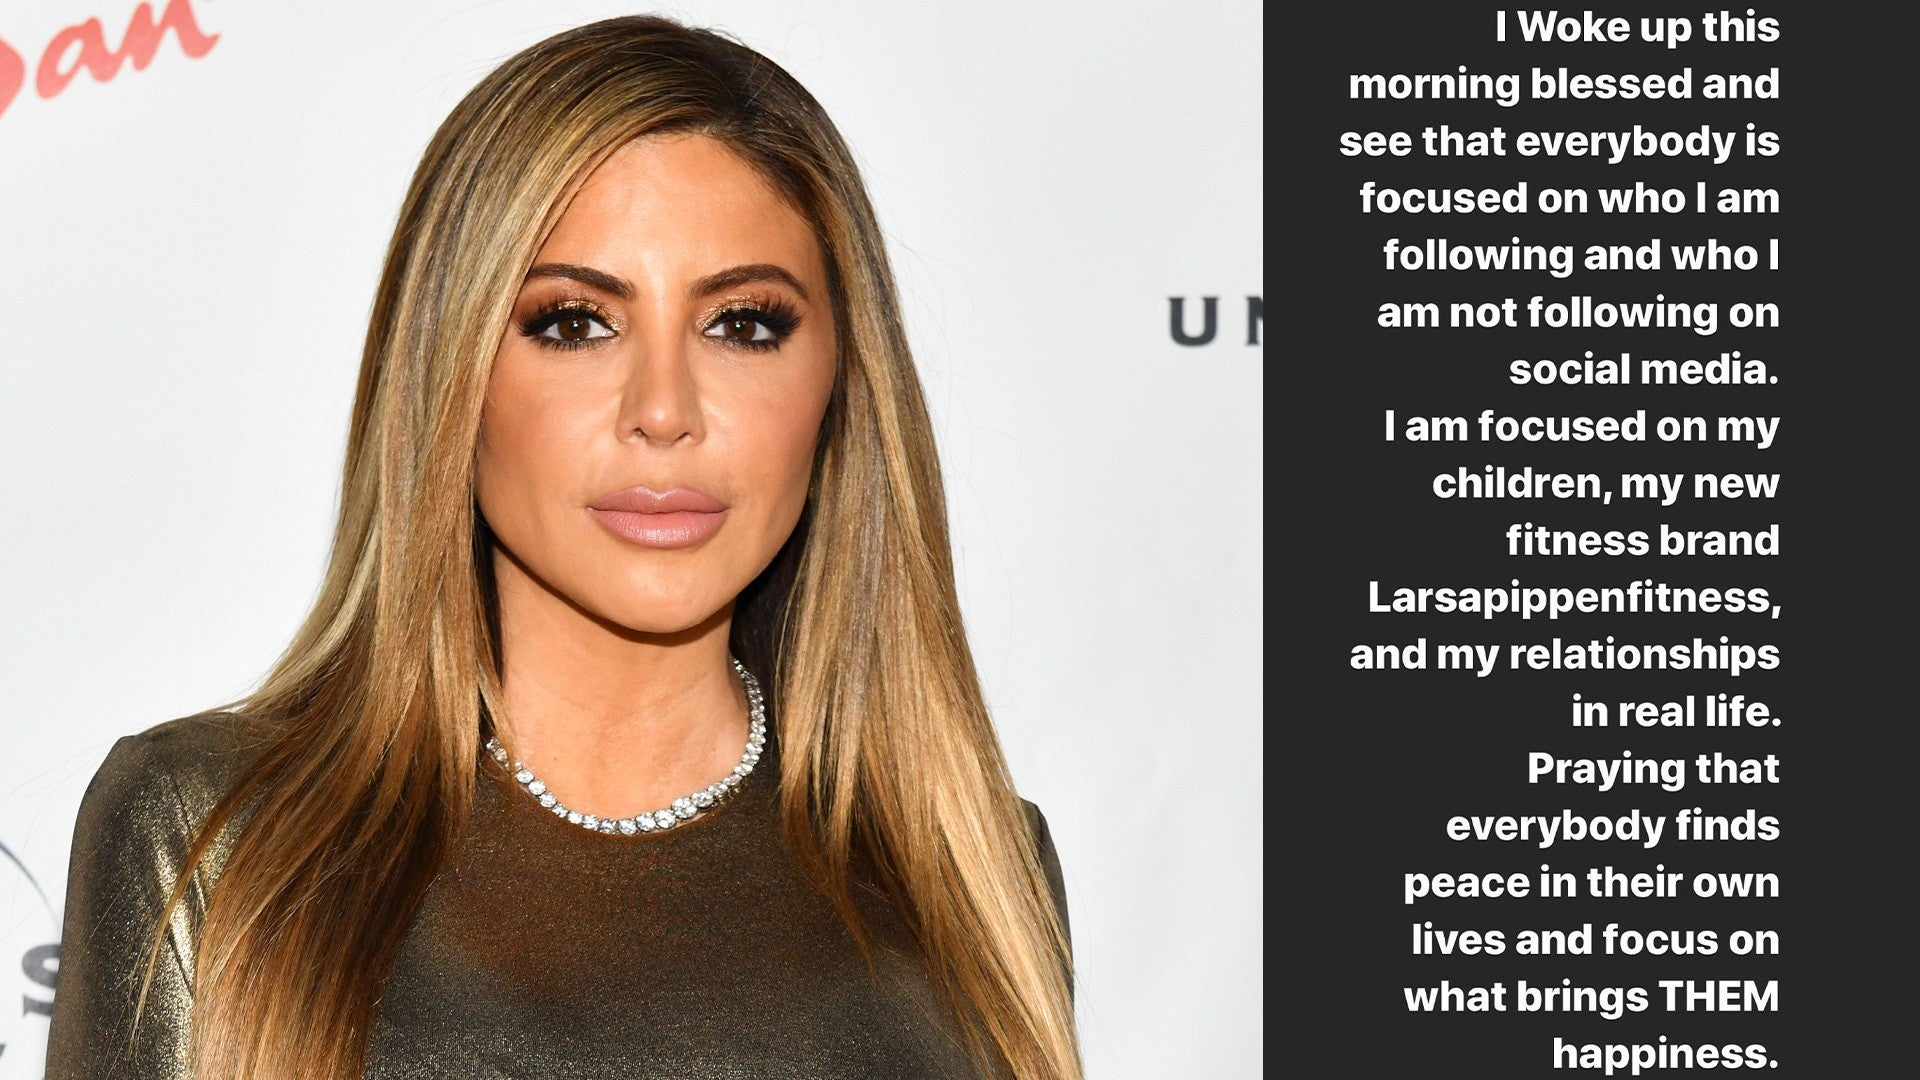 Larsa Pippen Breaks Her Silence After Being Mentioned in Kanye ...